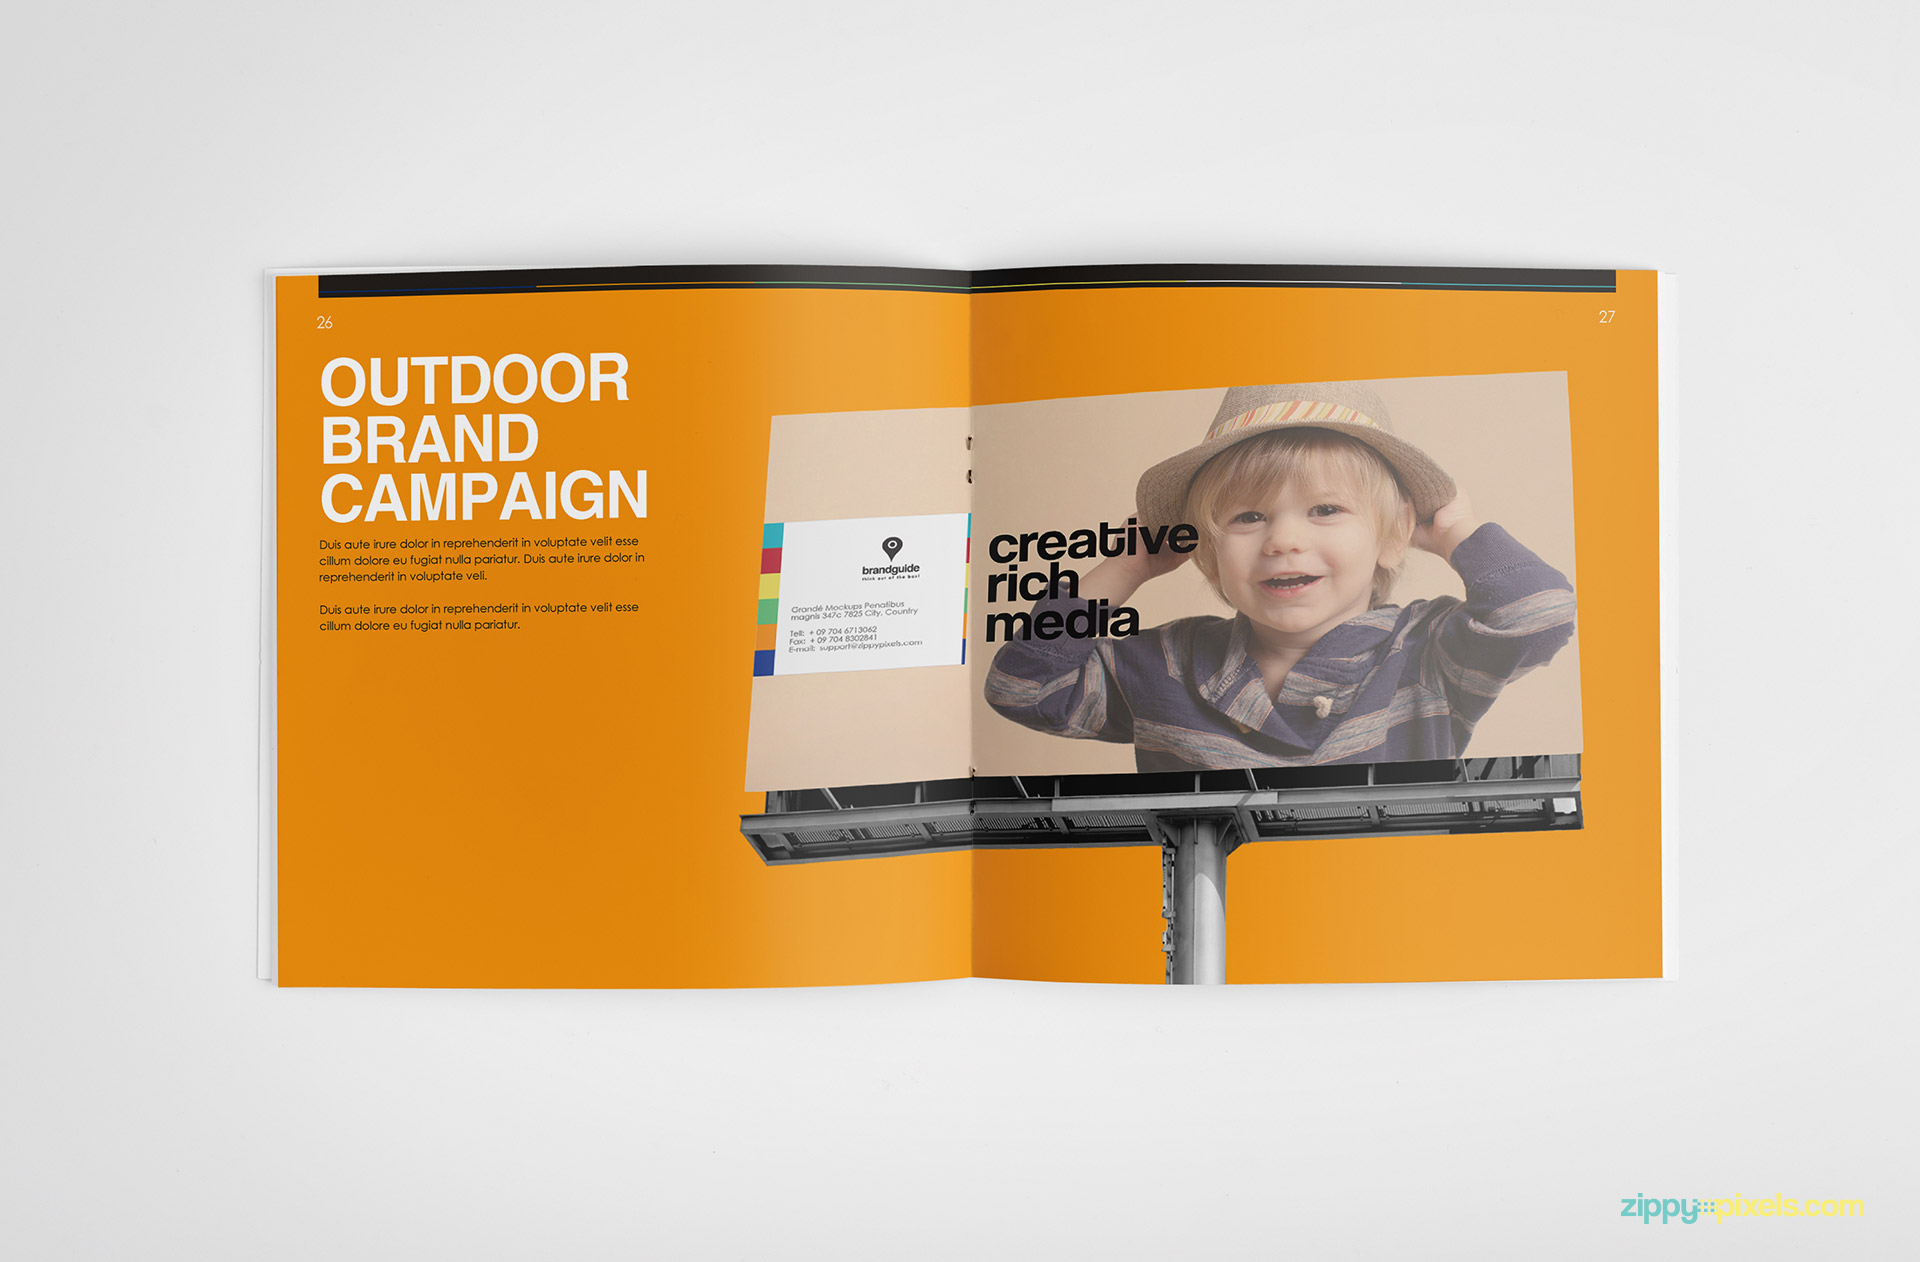 17-brand-book-12-outdoor-brand-campaign-creative-rich-media